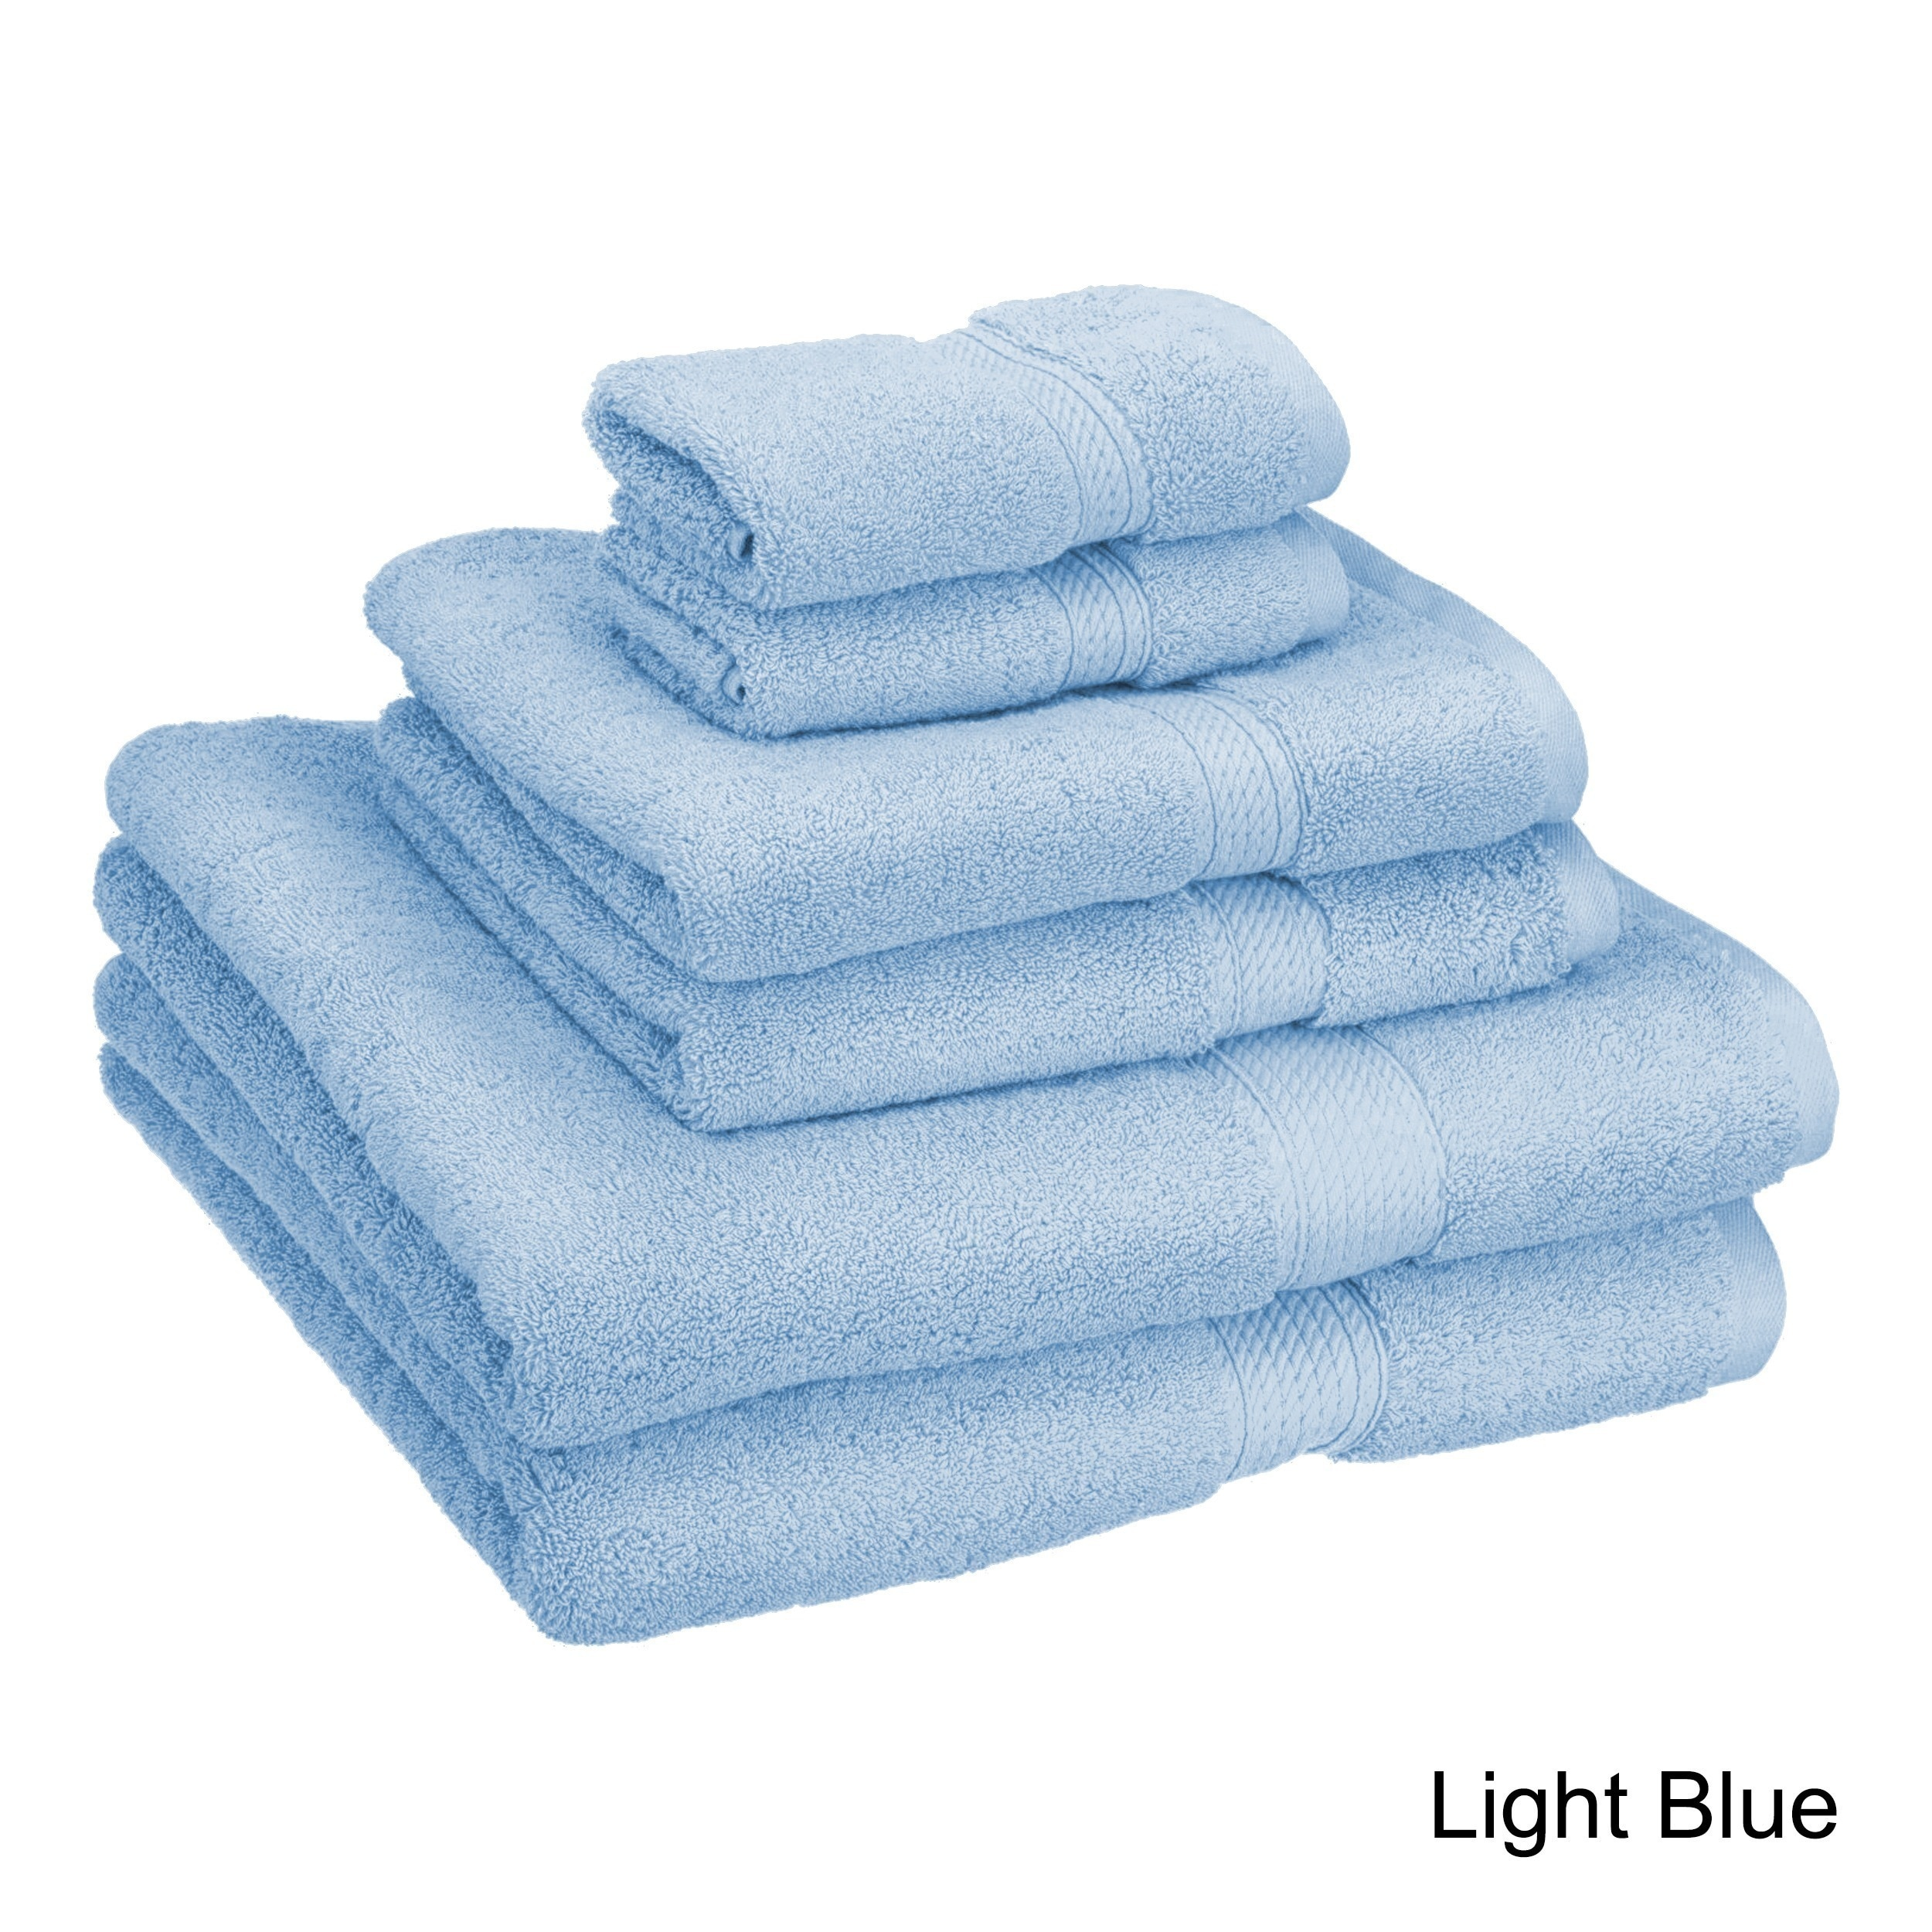 Superior Luxurious Absorbent 900 Gsm Combed Cotton 6 Piece Towel Set On Free Shipping Today 5296998